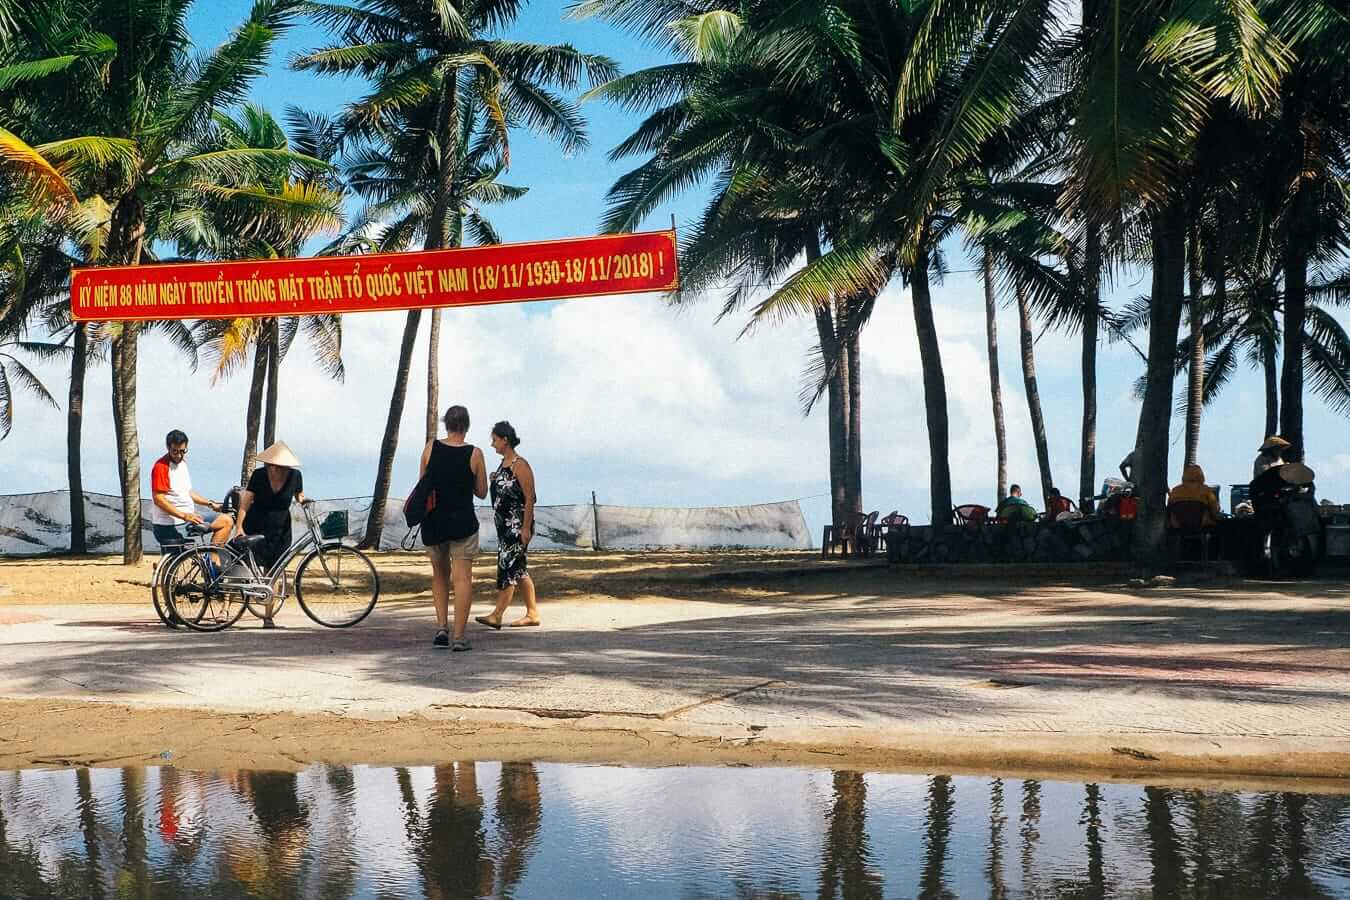 Beachgoers parking their bikes at Cua Dai Beach